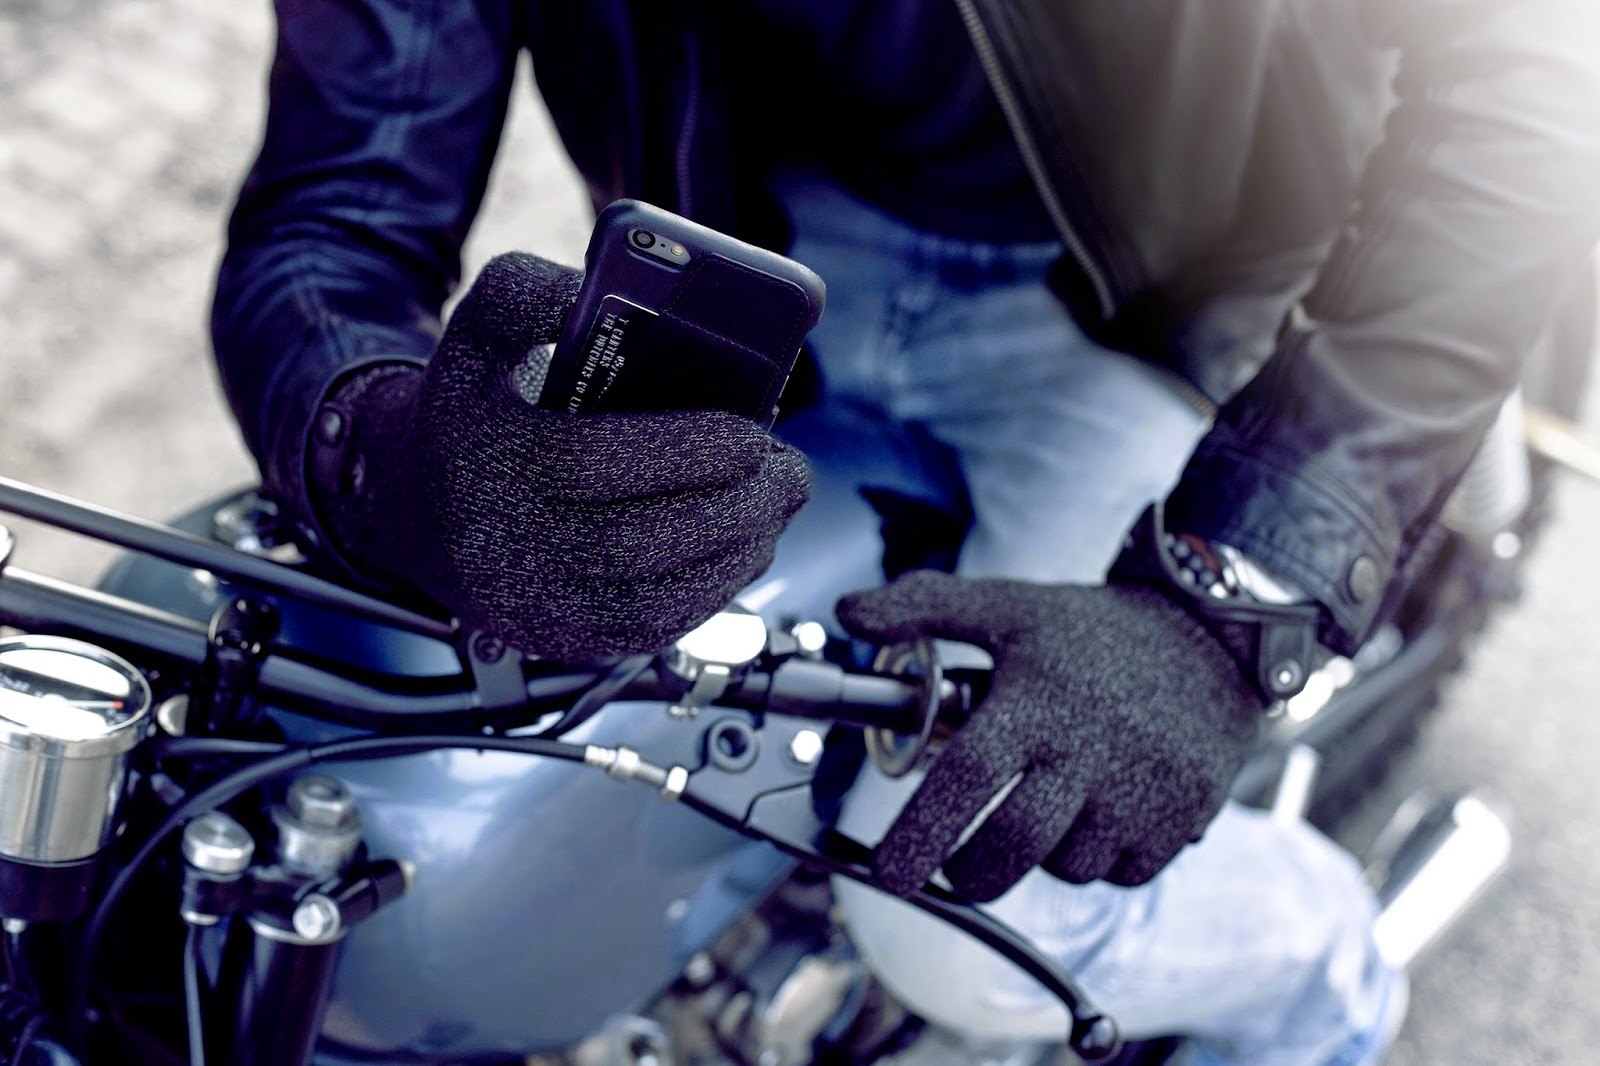 stylish gloves for touchscreens